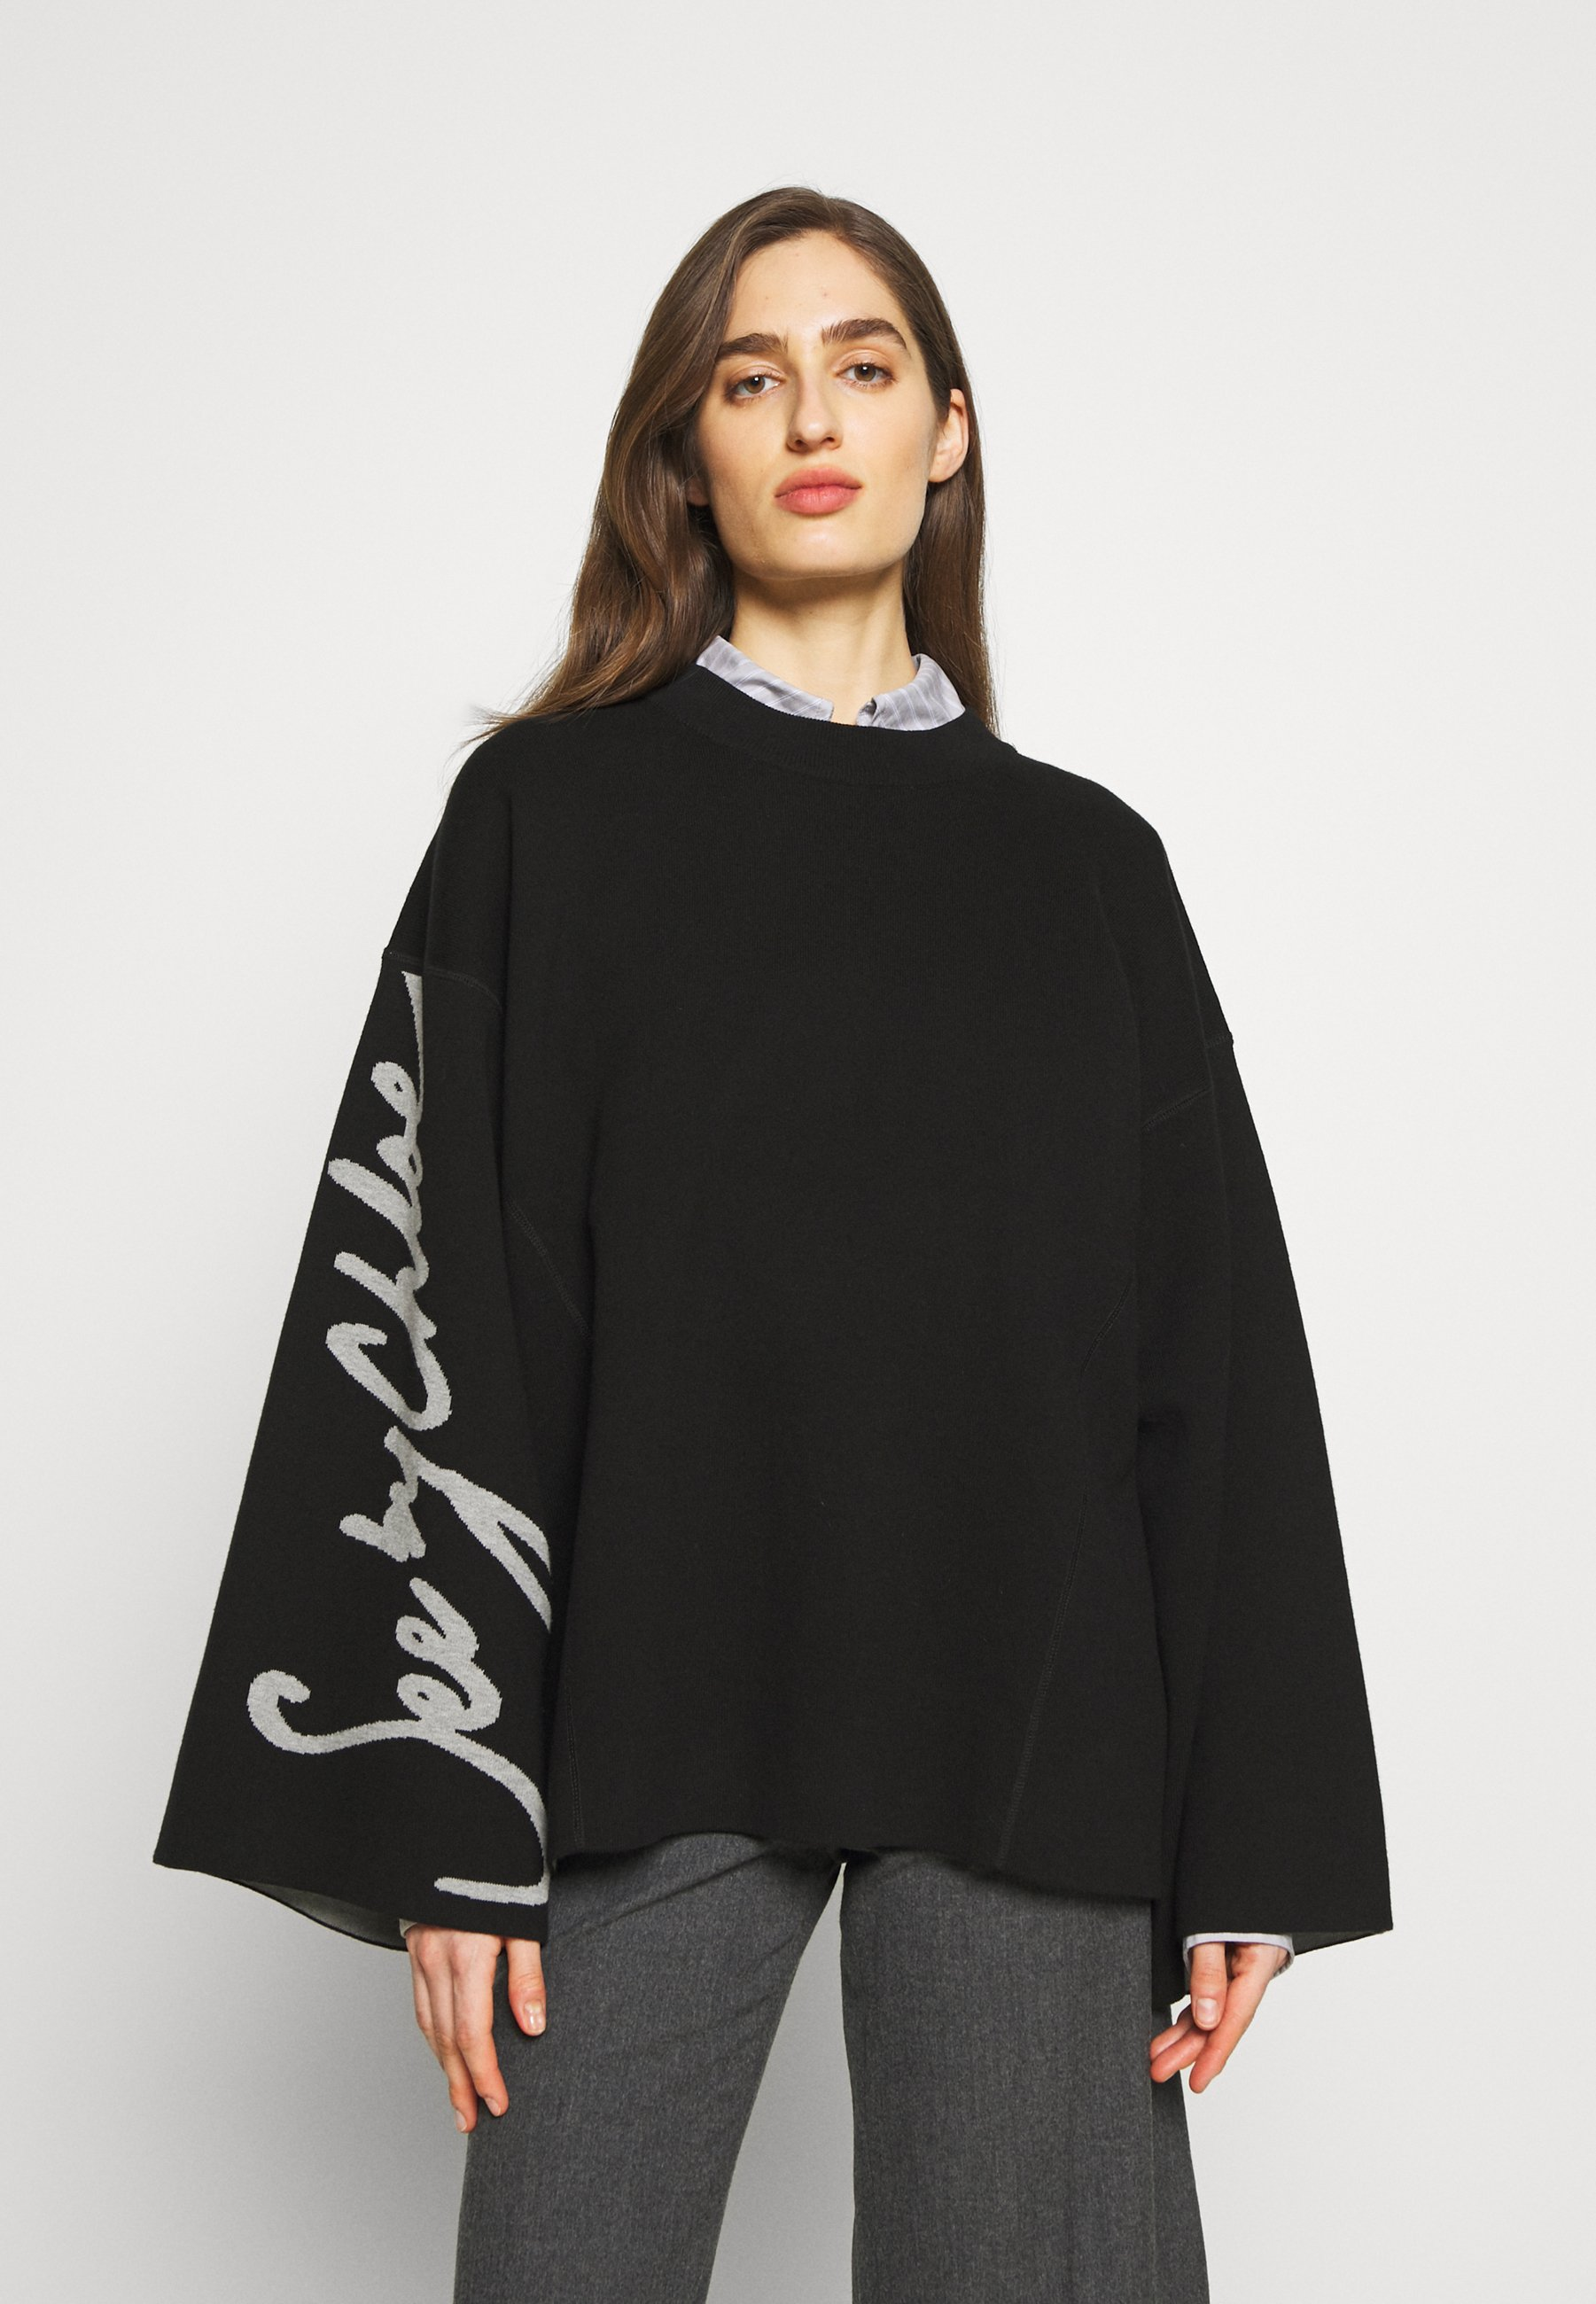 2020 New Women's Clothing See by Chloé Jumper charcoal black 4kKKkNWZa